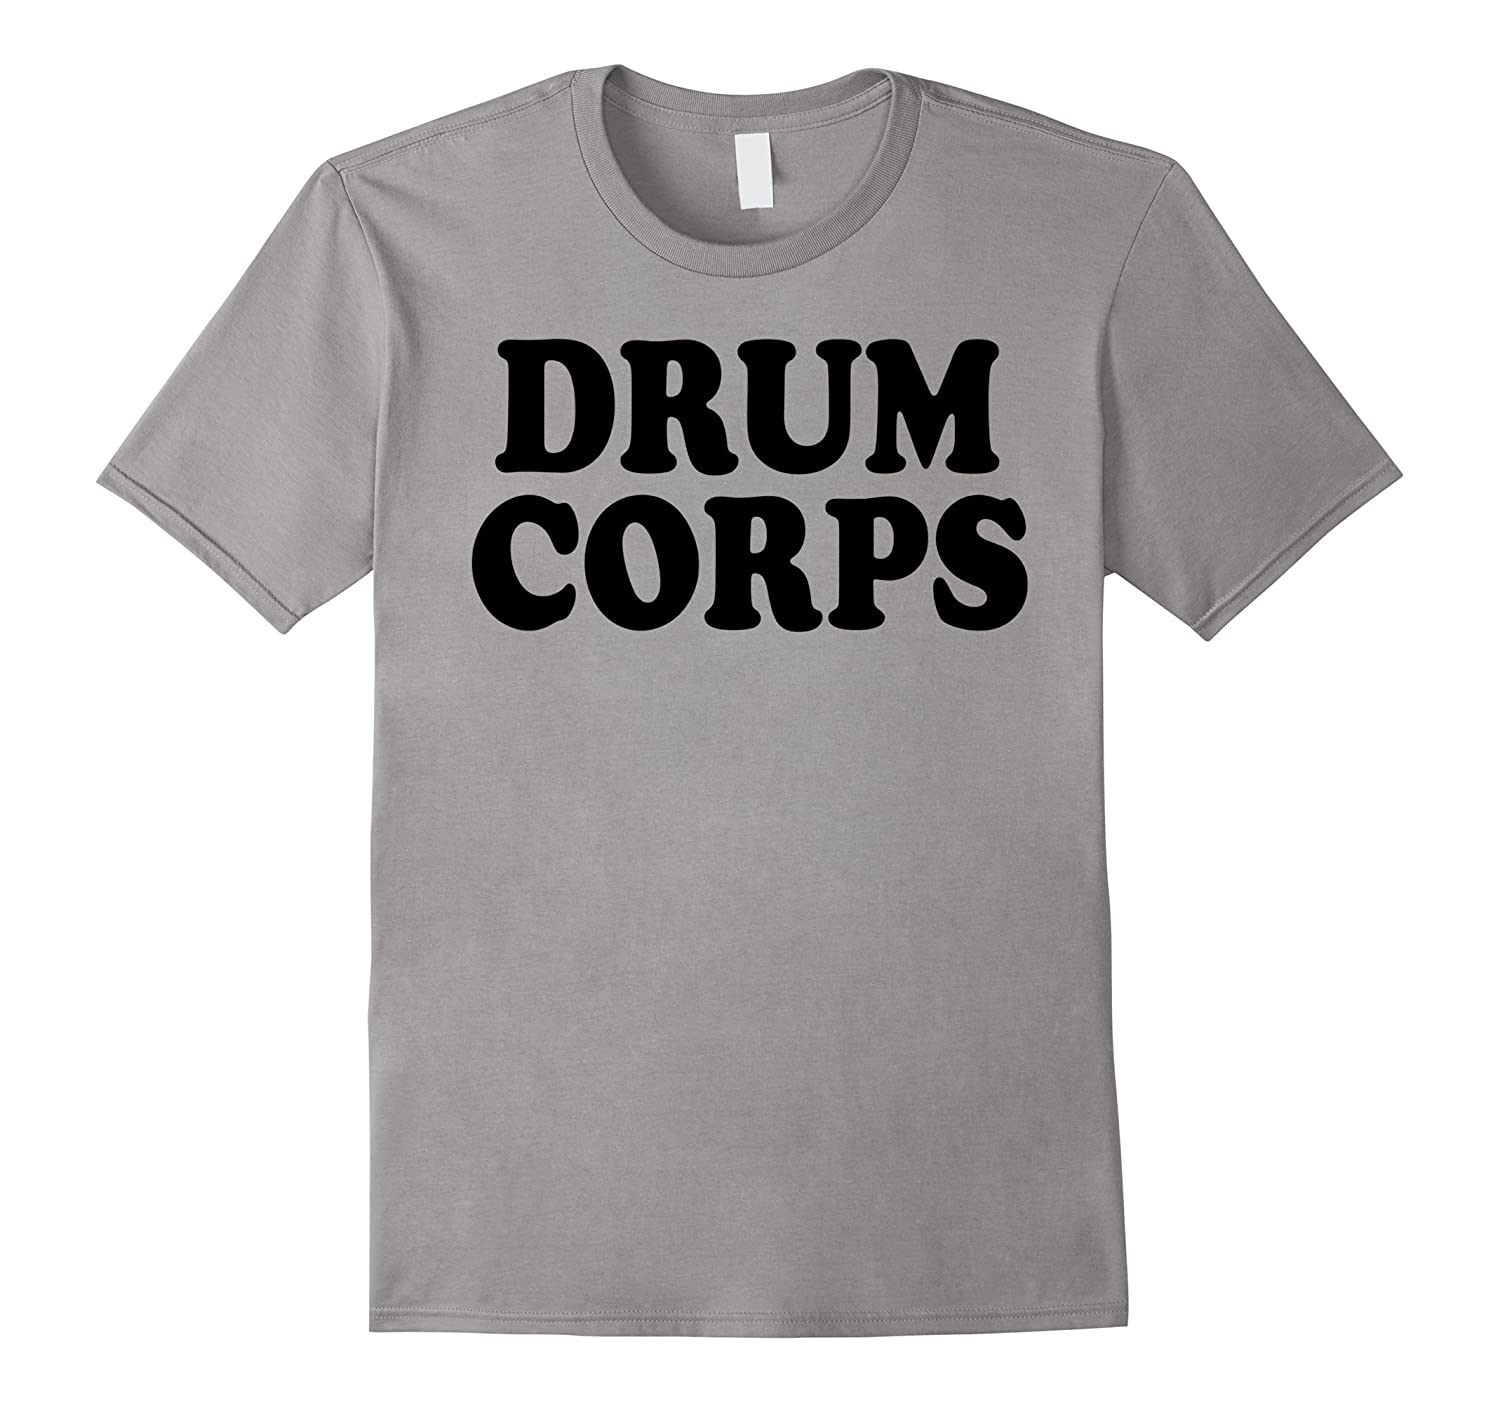 Drum Corps t shirt marching band-Teevkd